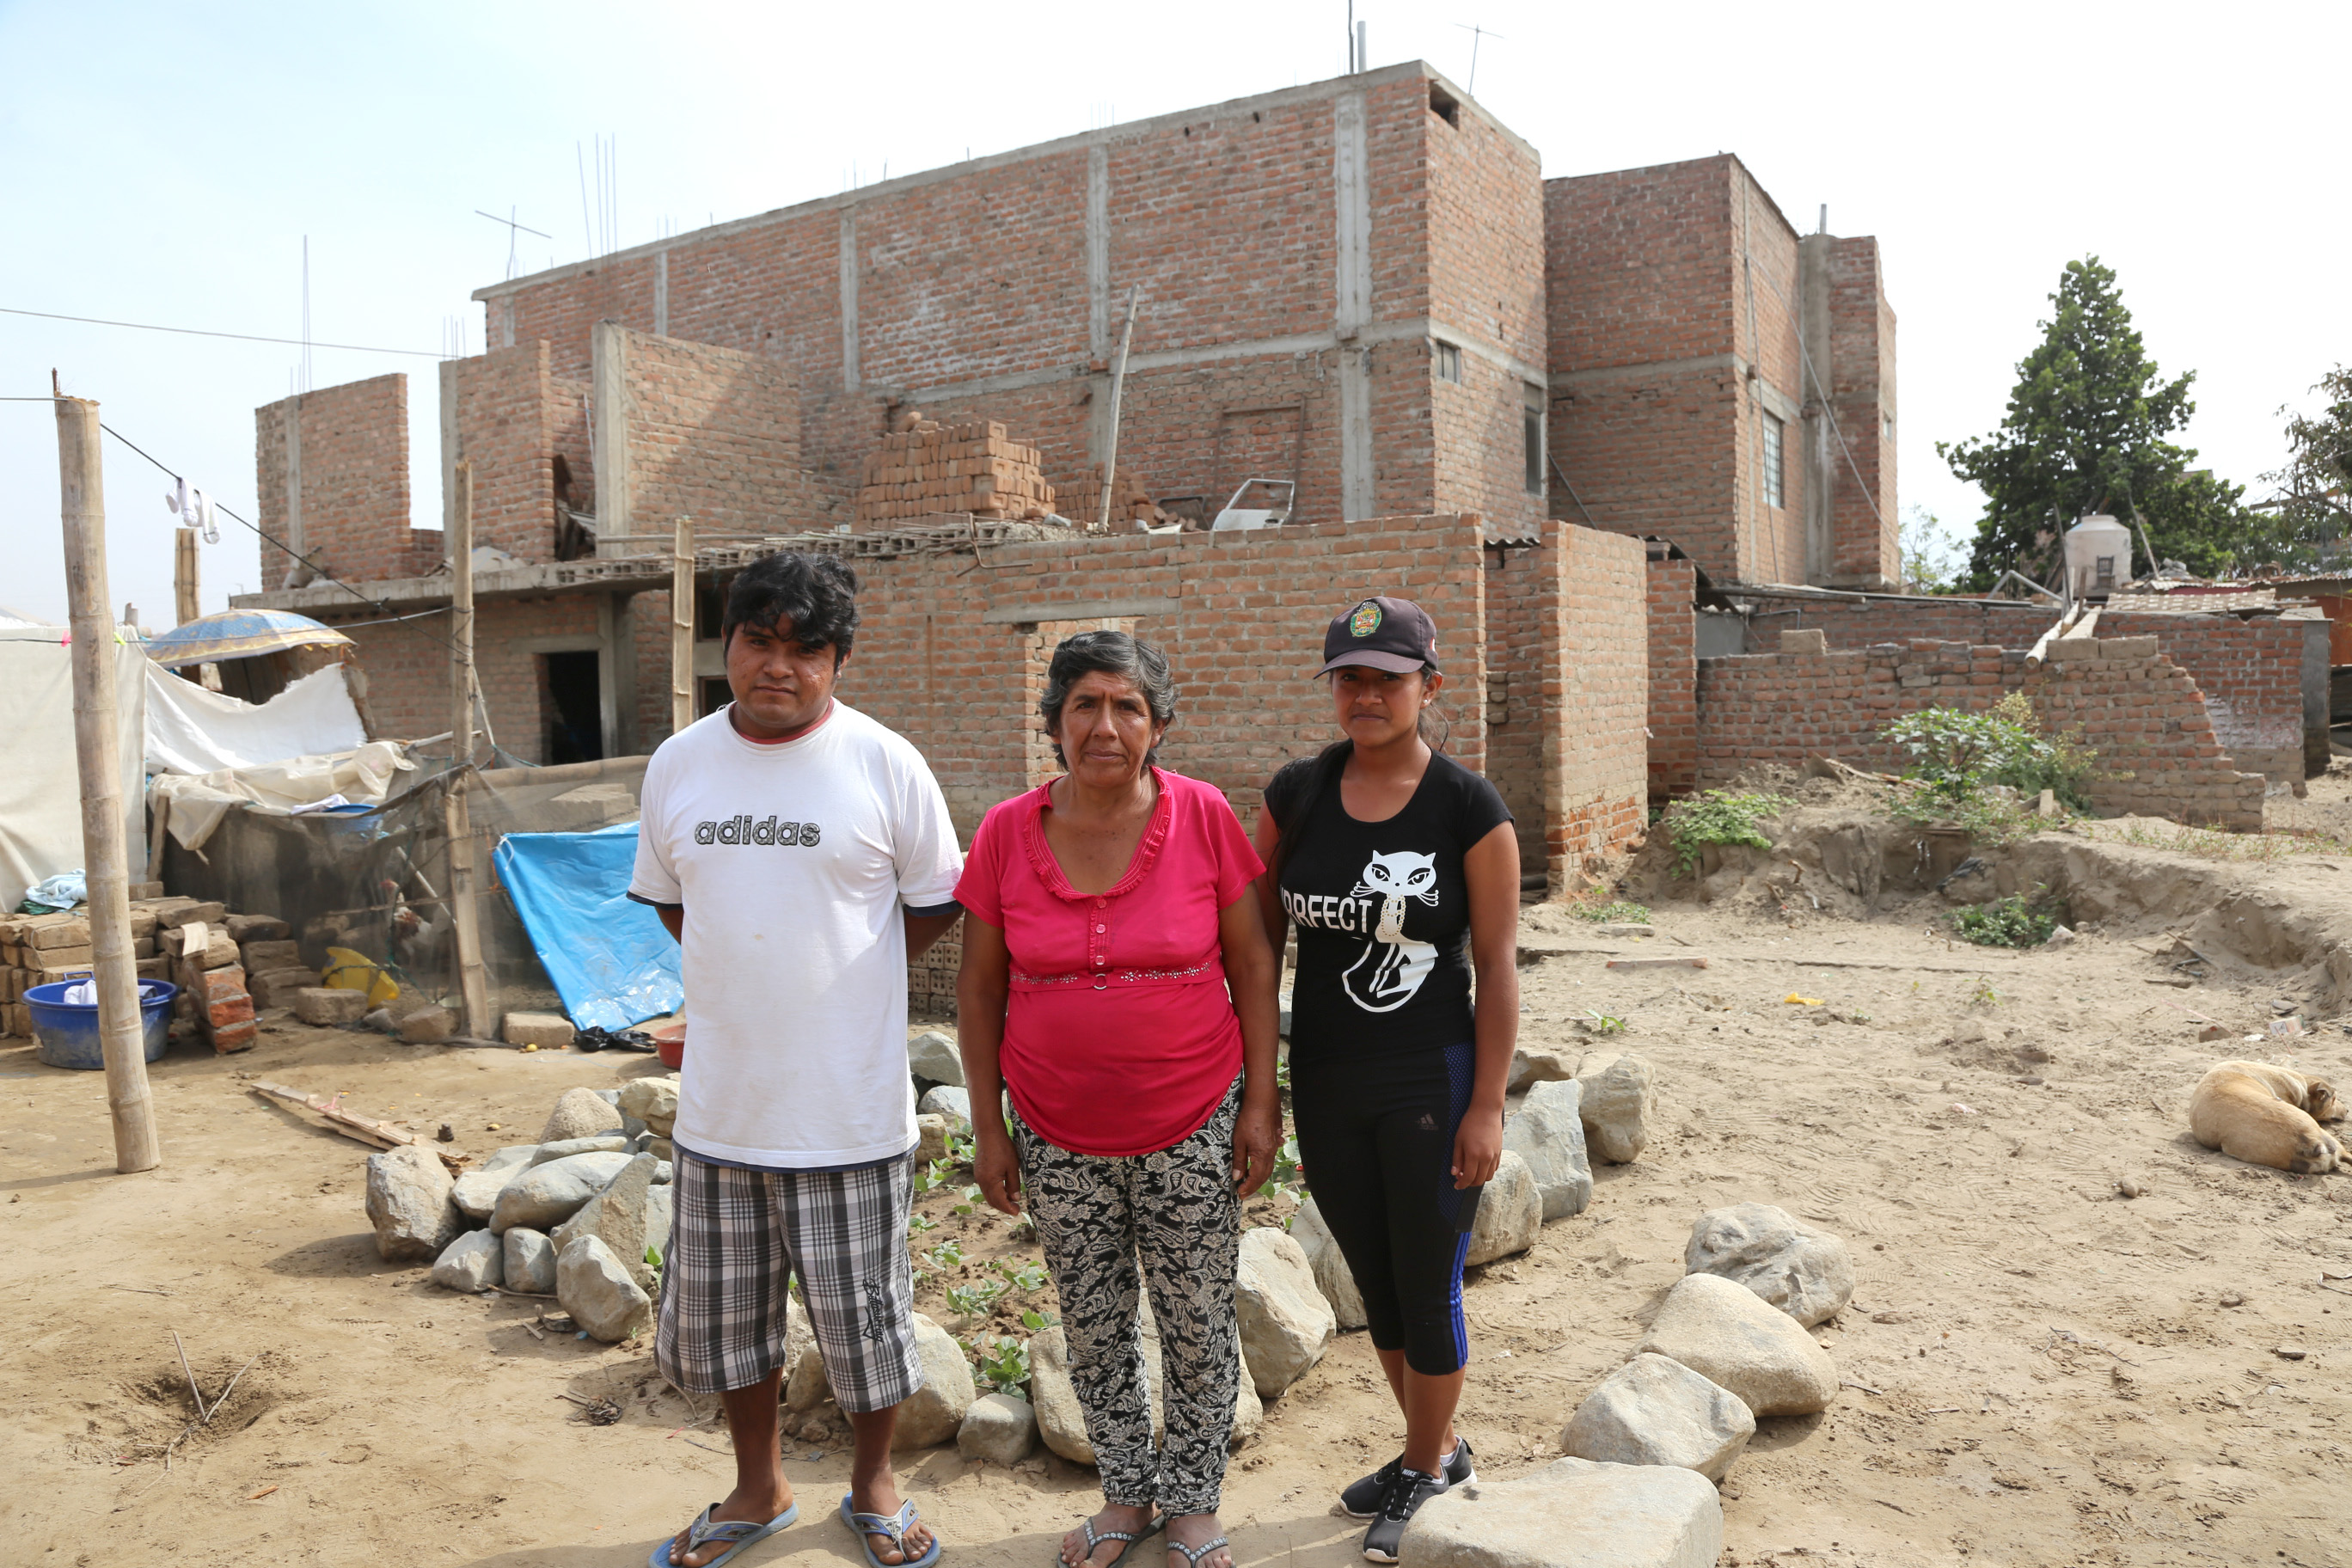 Julia and family on the site of where their home once stood